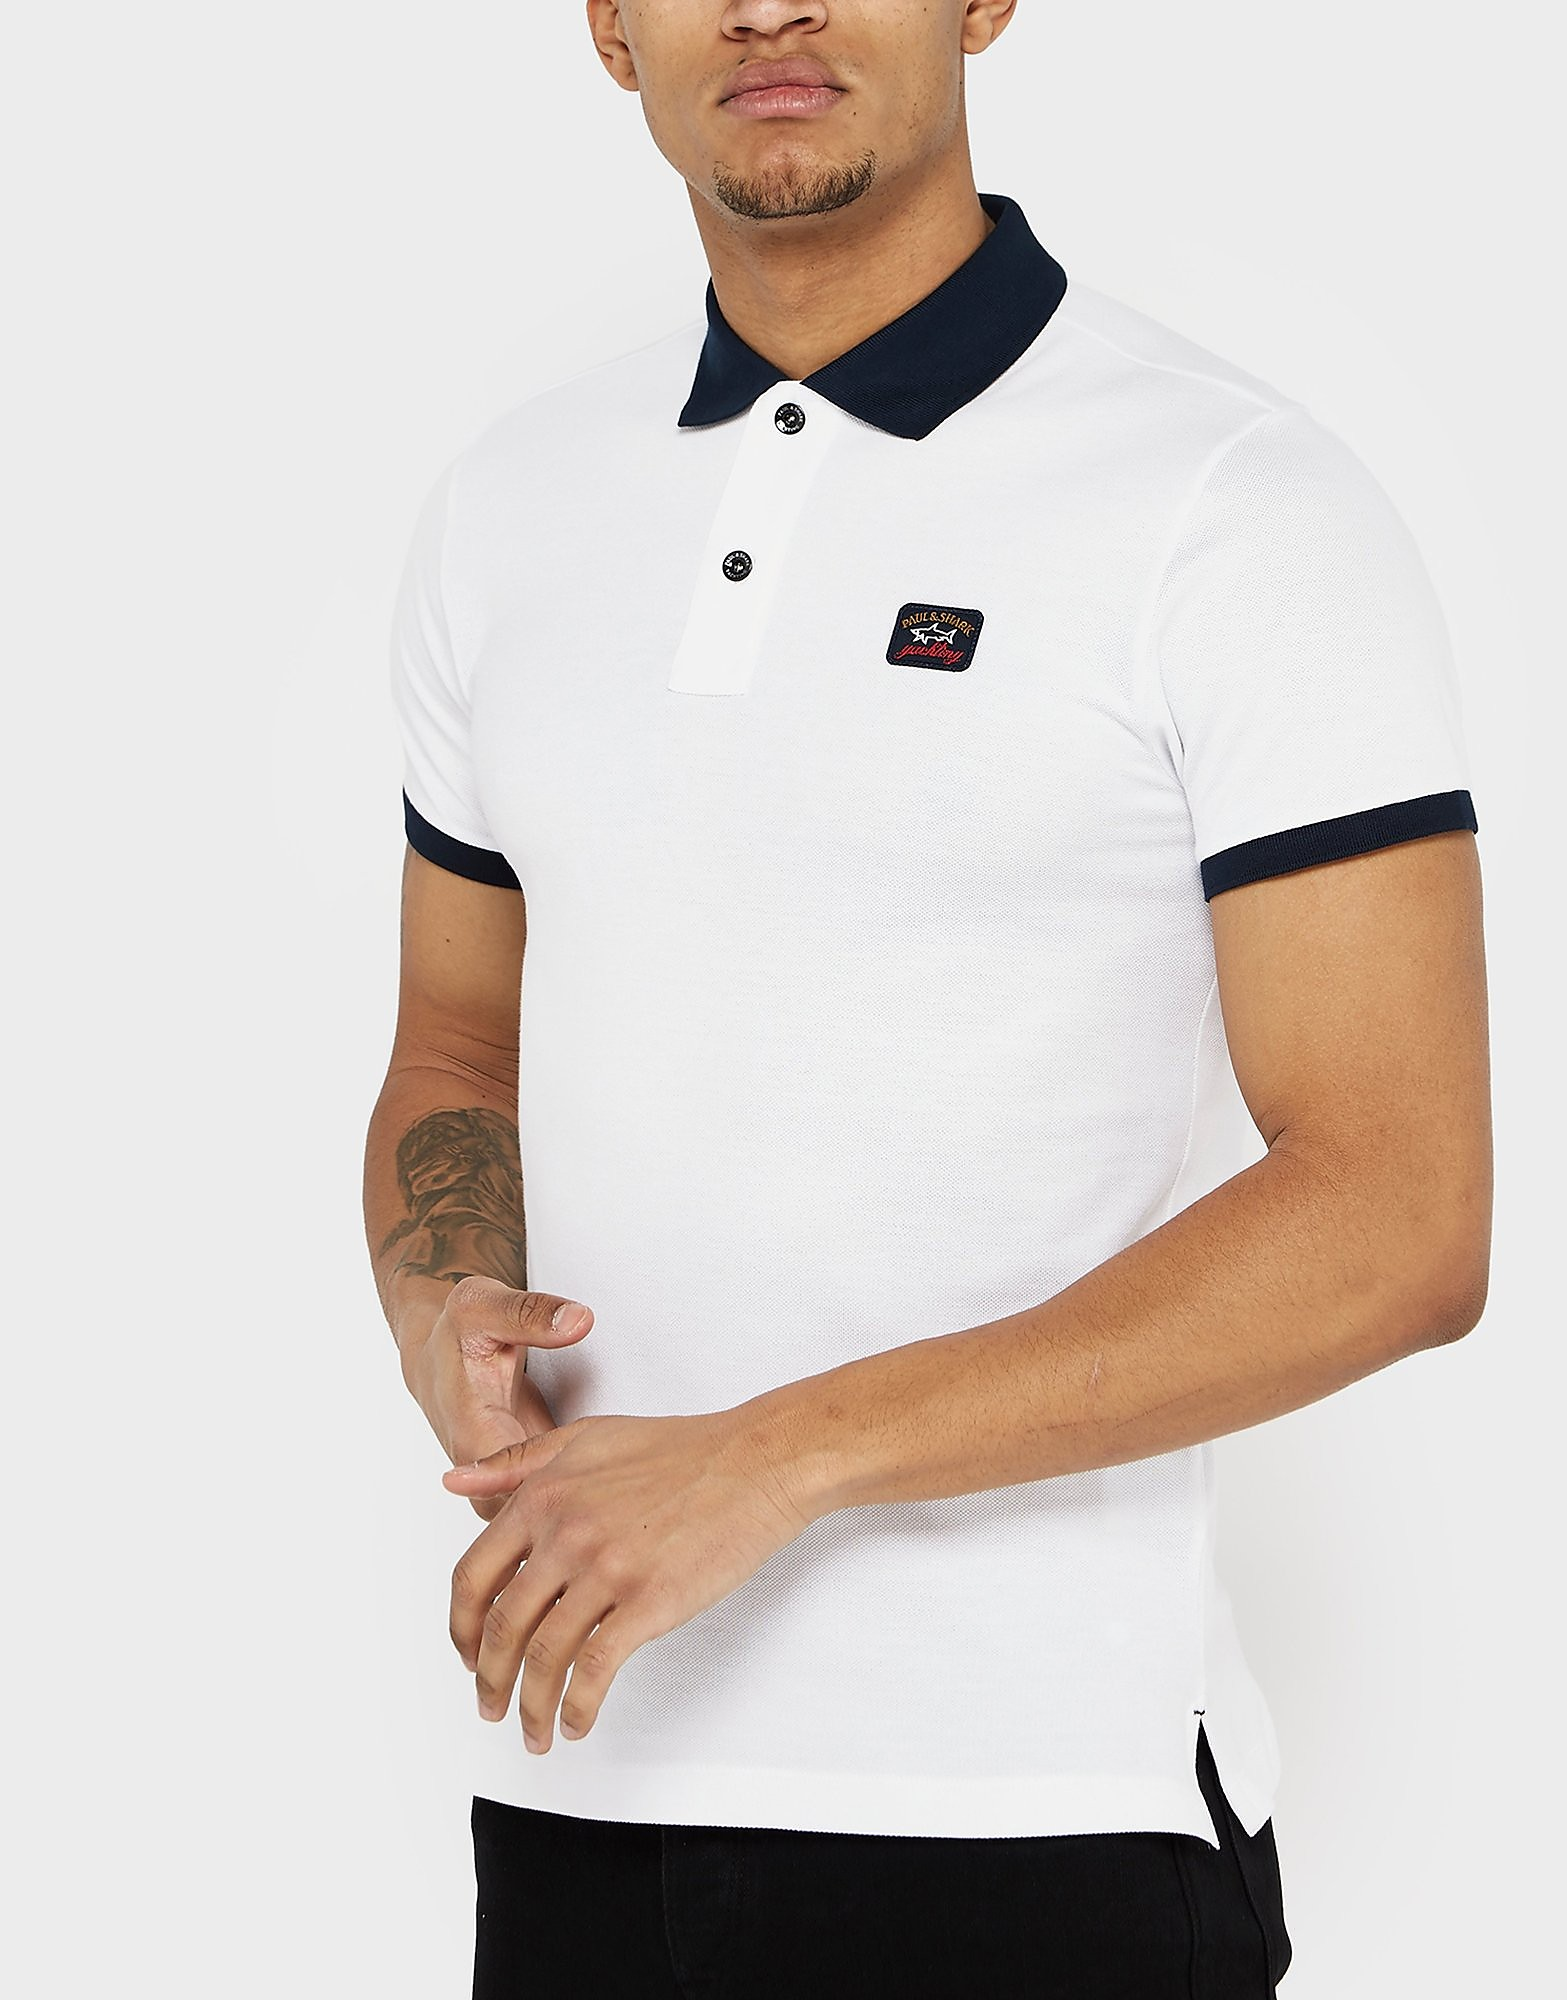 Paul and Shark Contrast Collar Polo Shirt - Exclusive